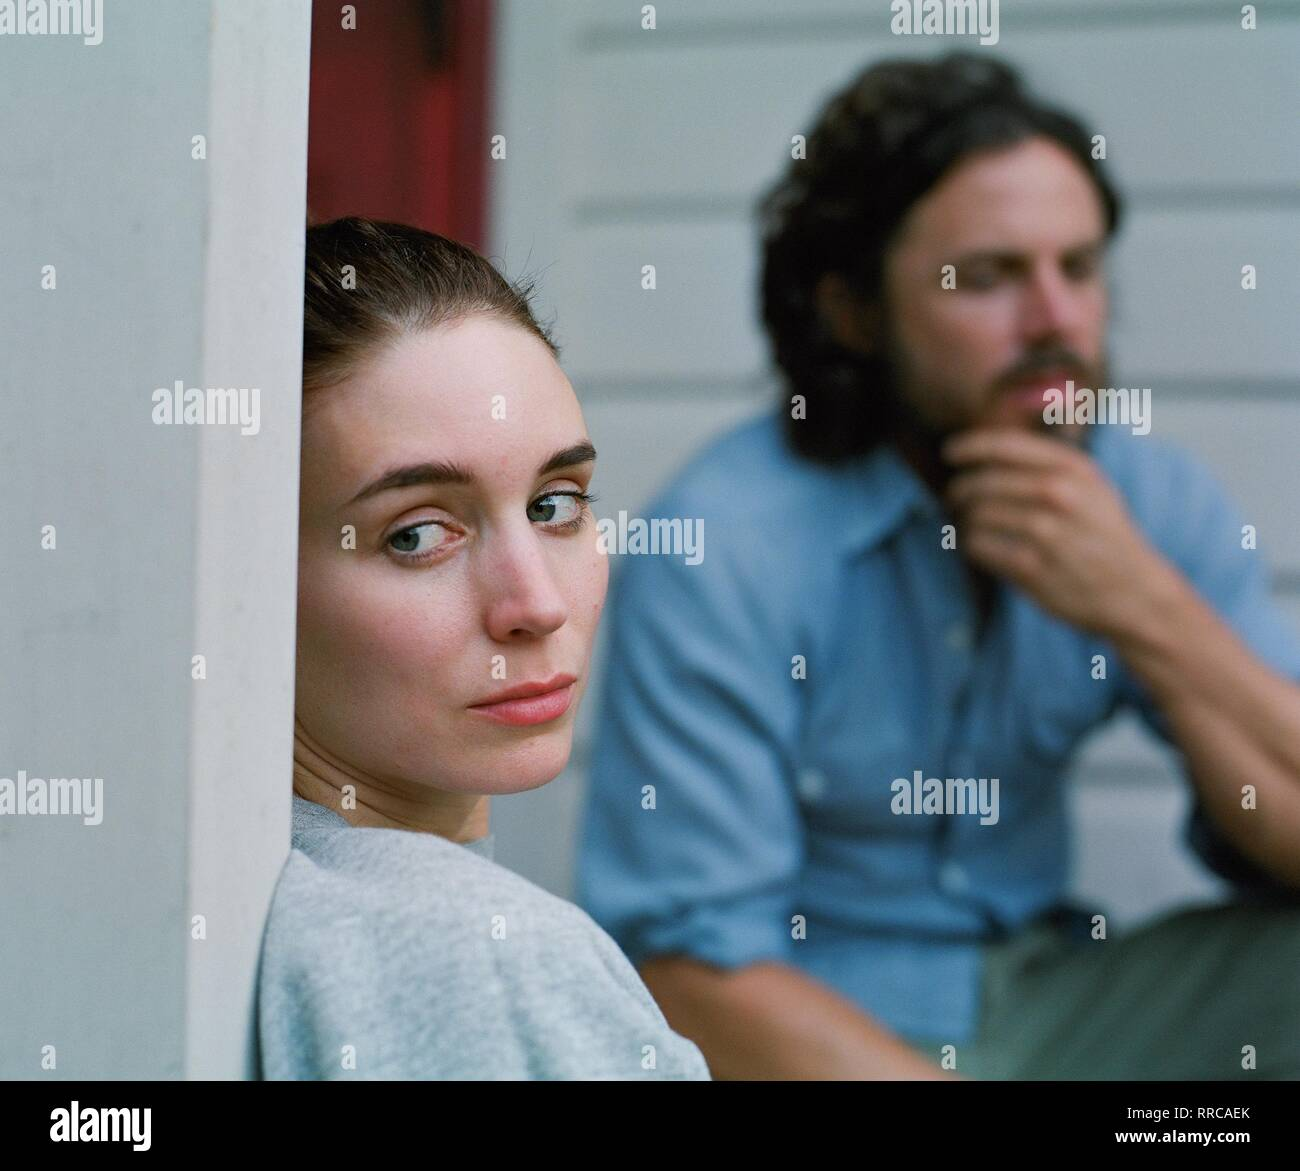 A GHOST STORY, ROONEY MARA , CASEY AFFLECK, 2017 - Stock Image